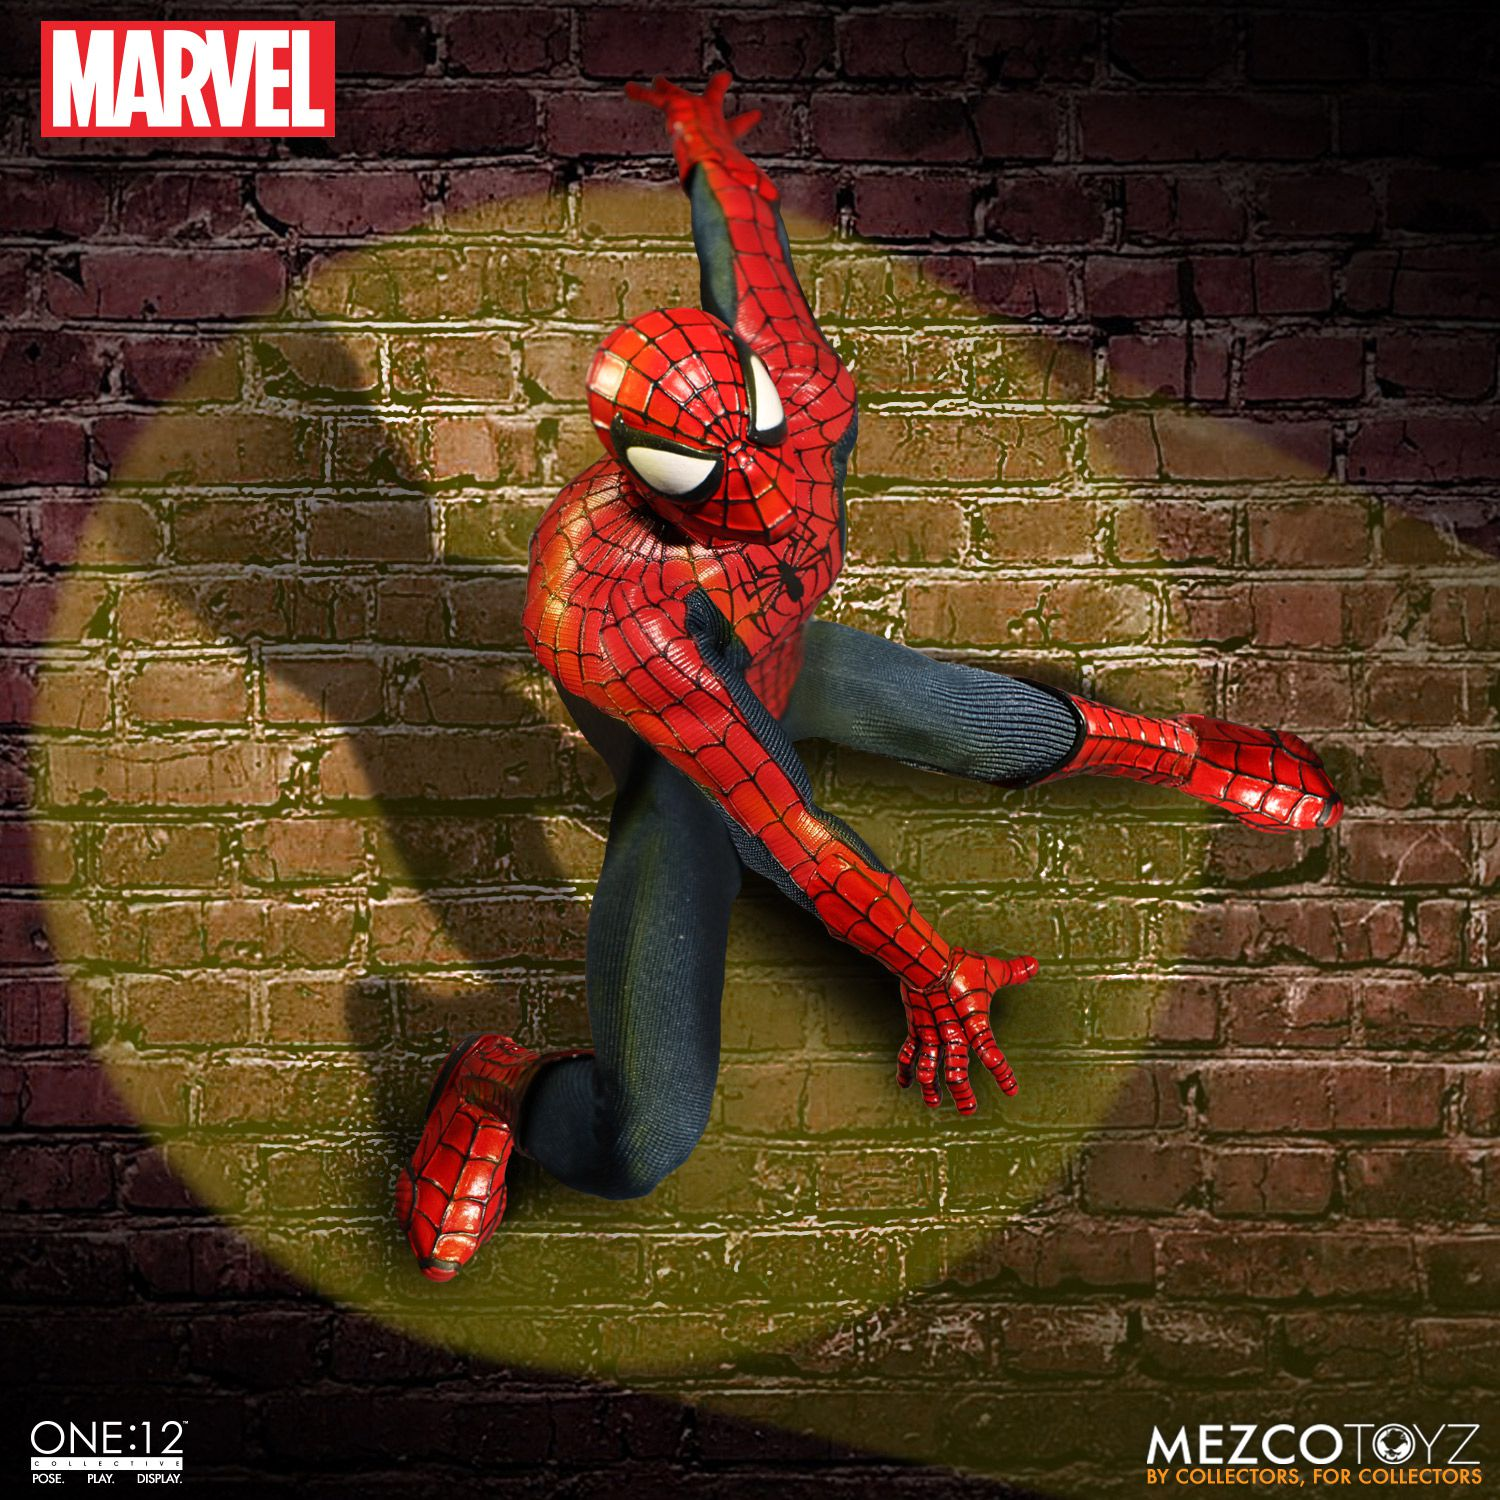 Mezco One:12 Collective Spider-Man Figure Details & Pre-Orders Open Today